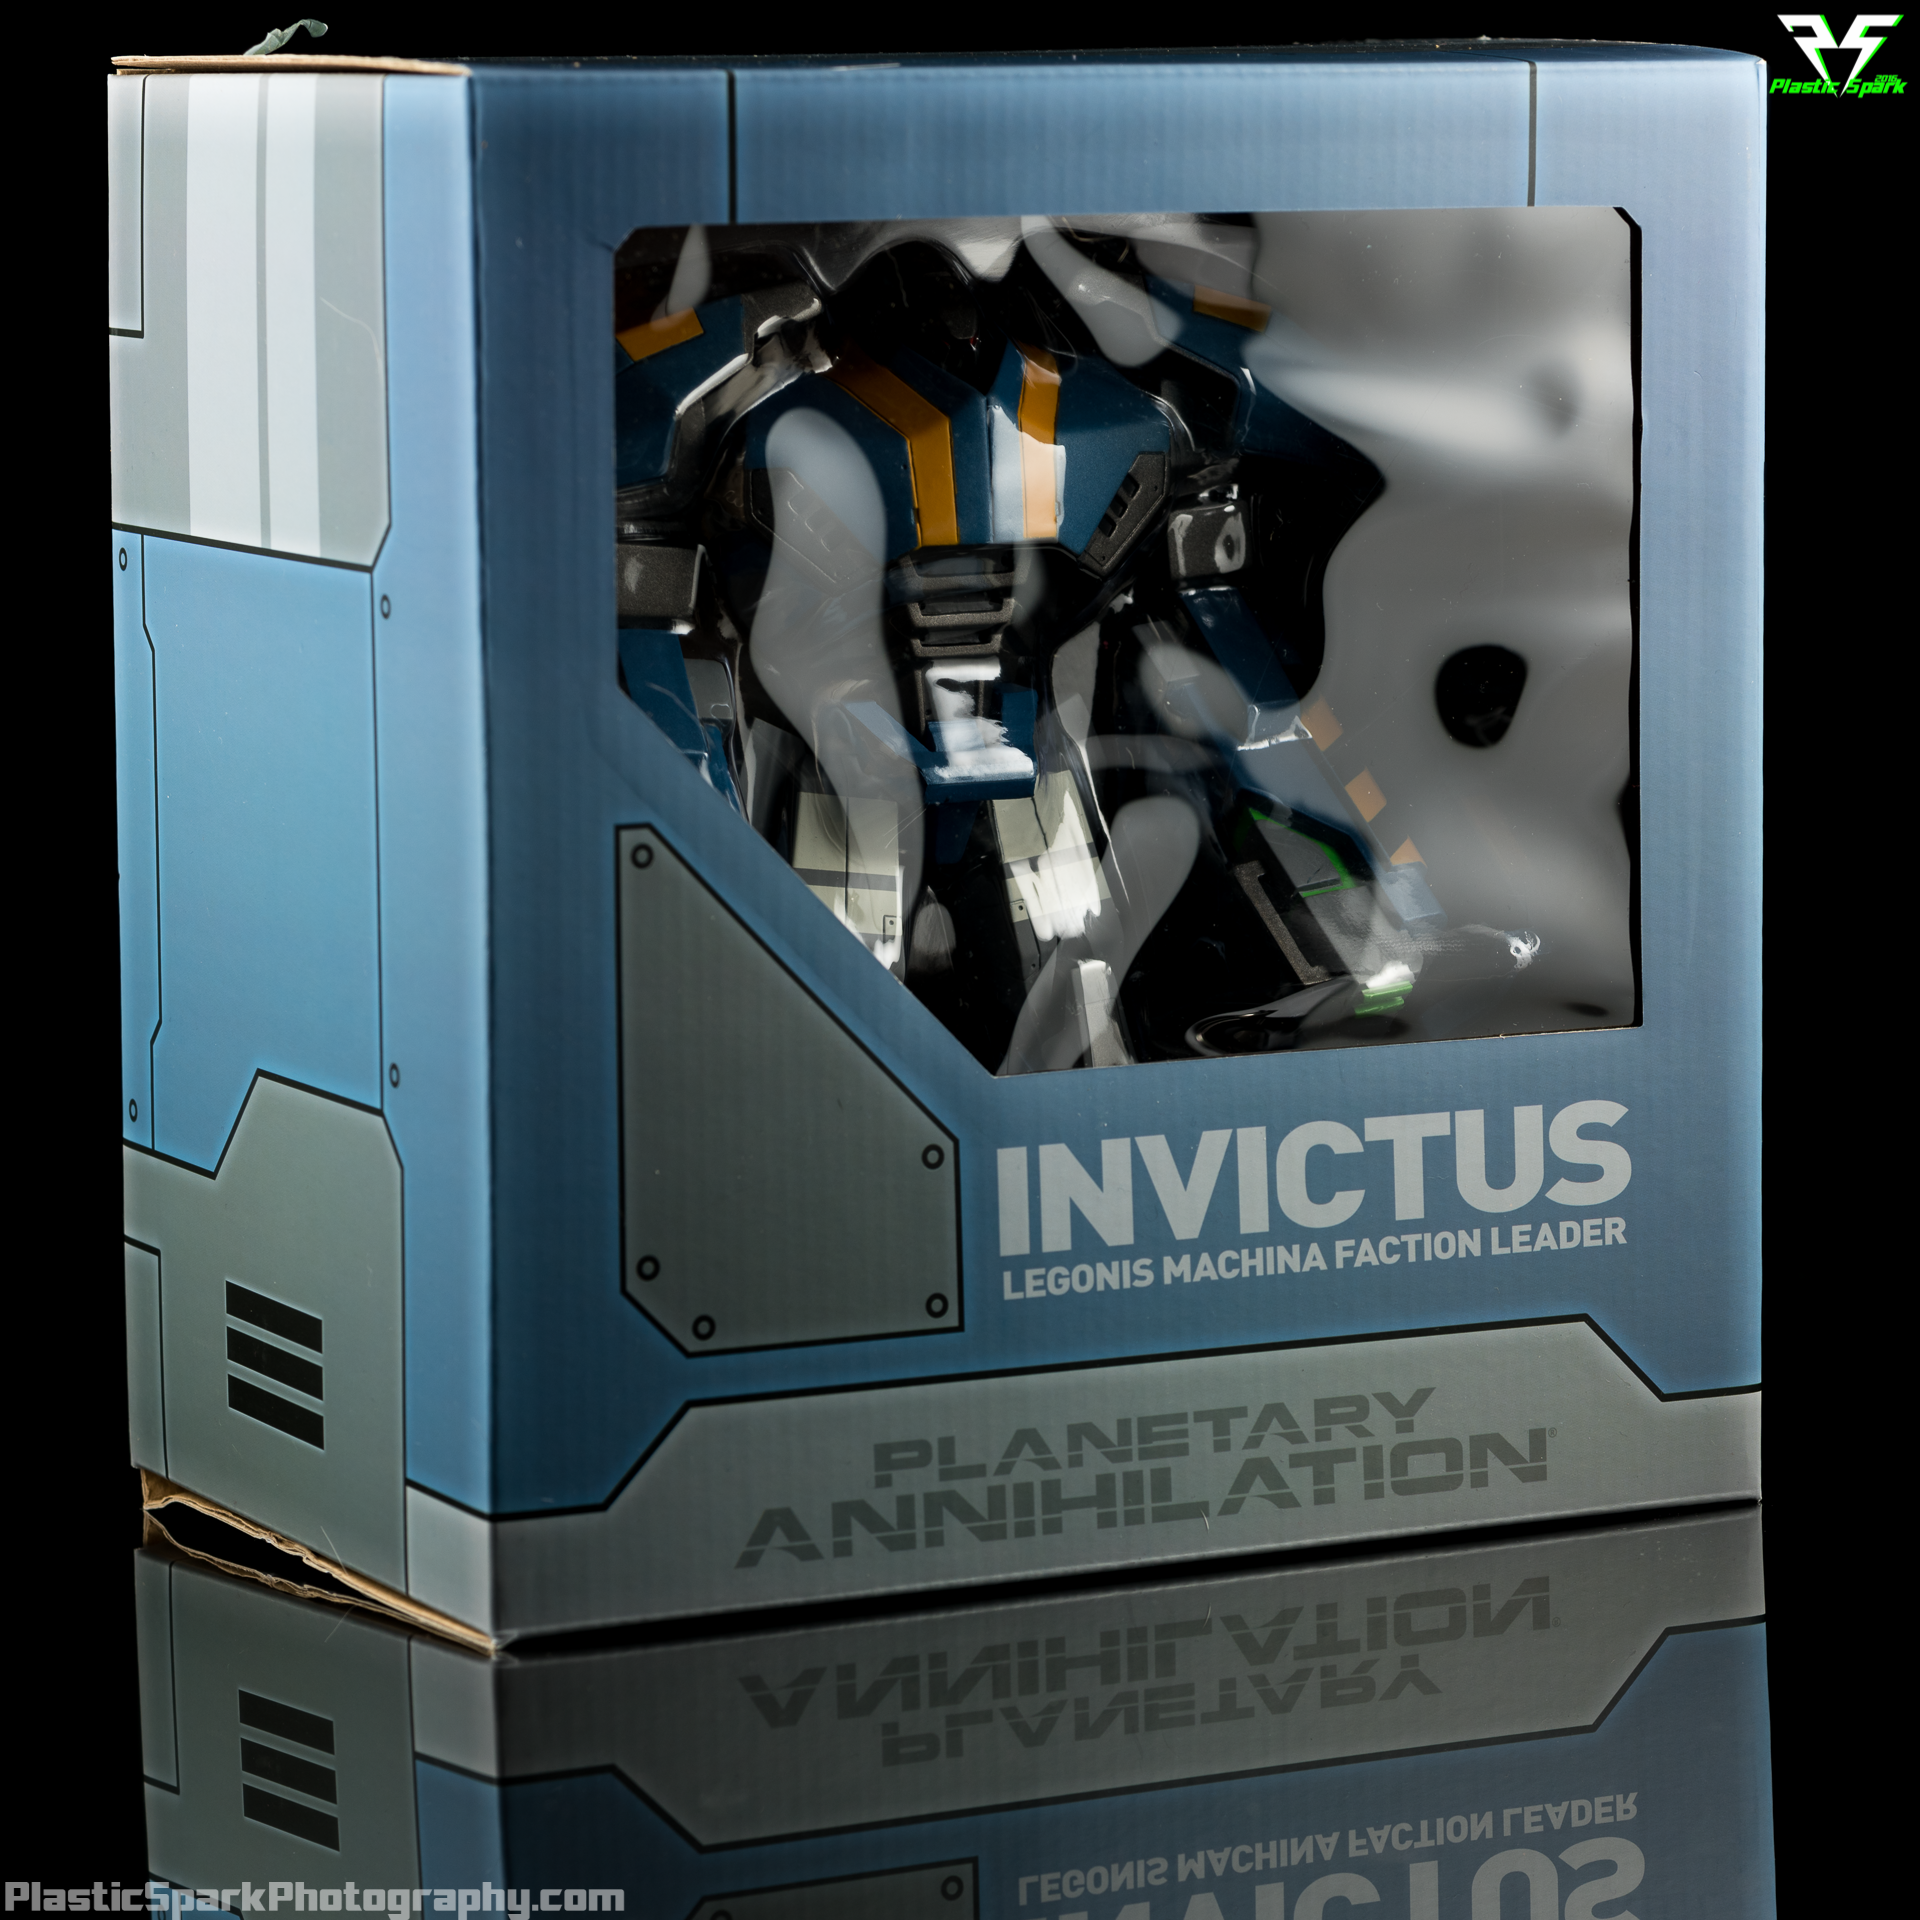 Planetary-Annihilation-Invictus-Statue-(10-of-10).png